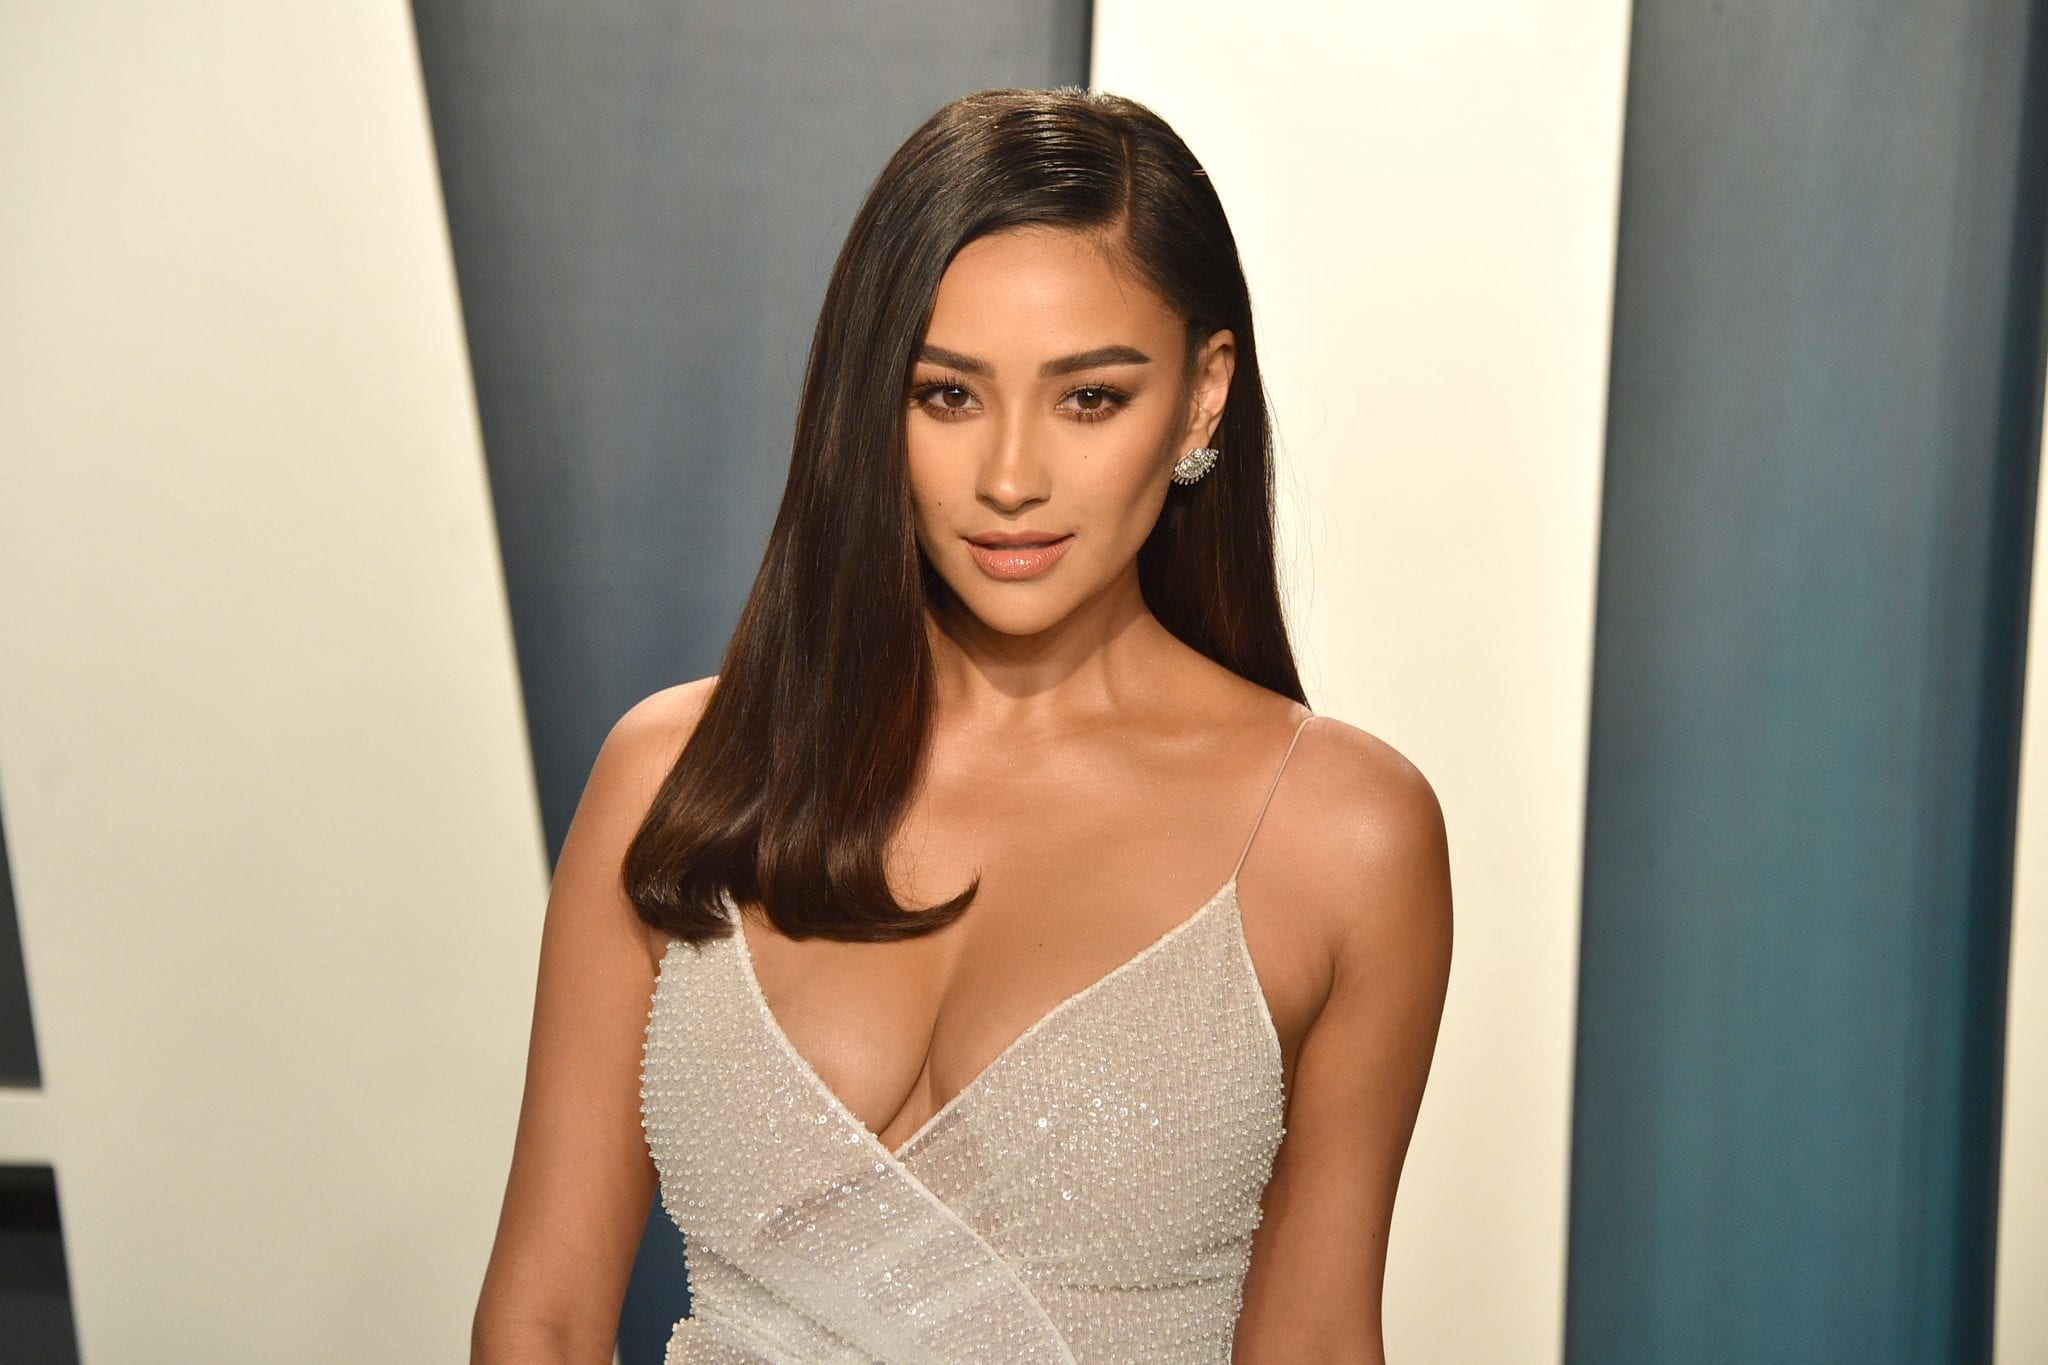 Who is Shay Mitchell dating?